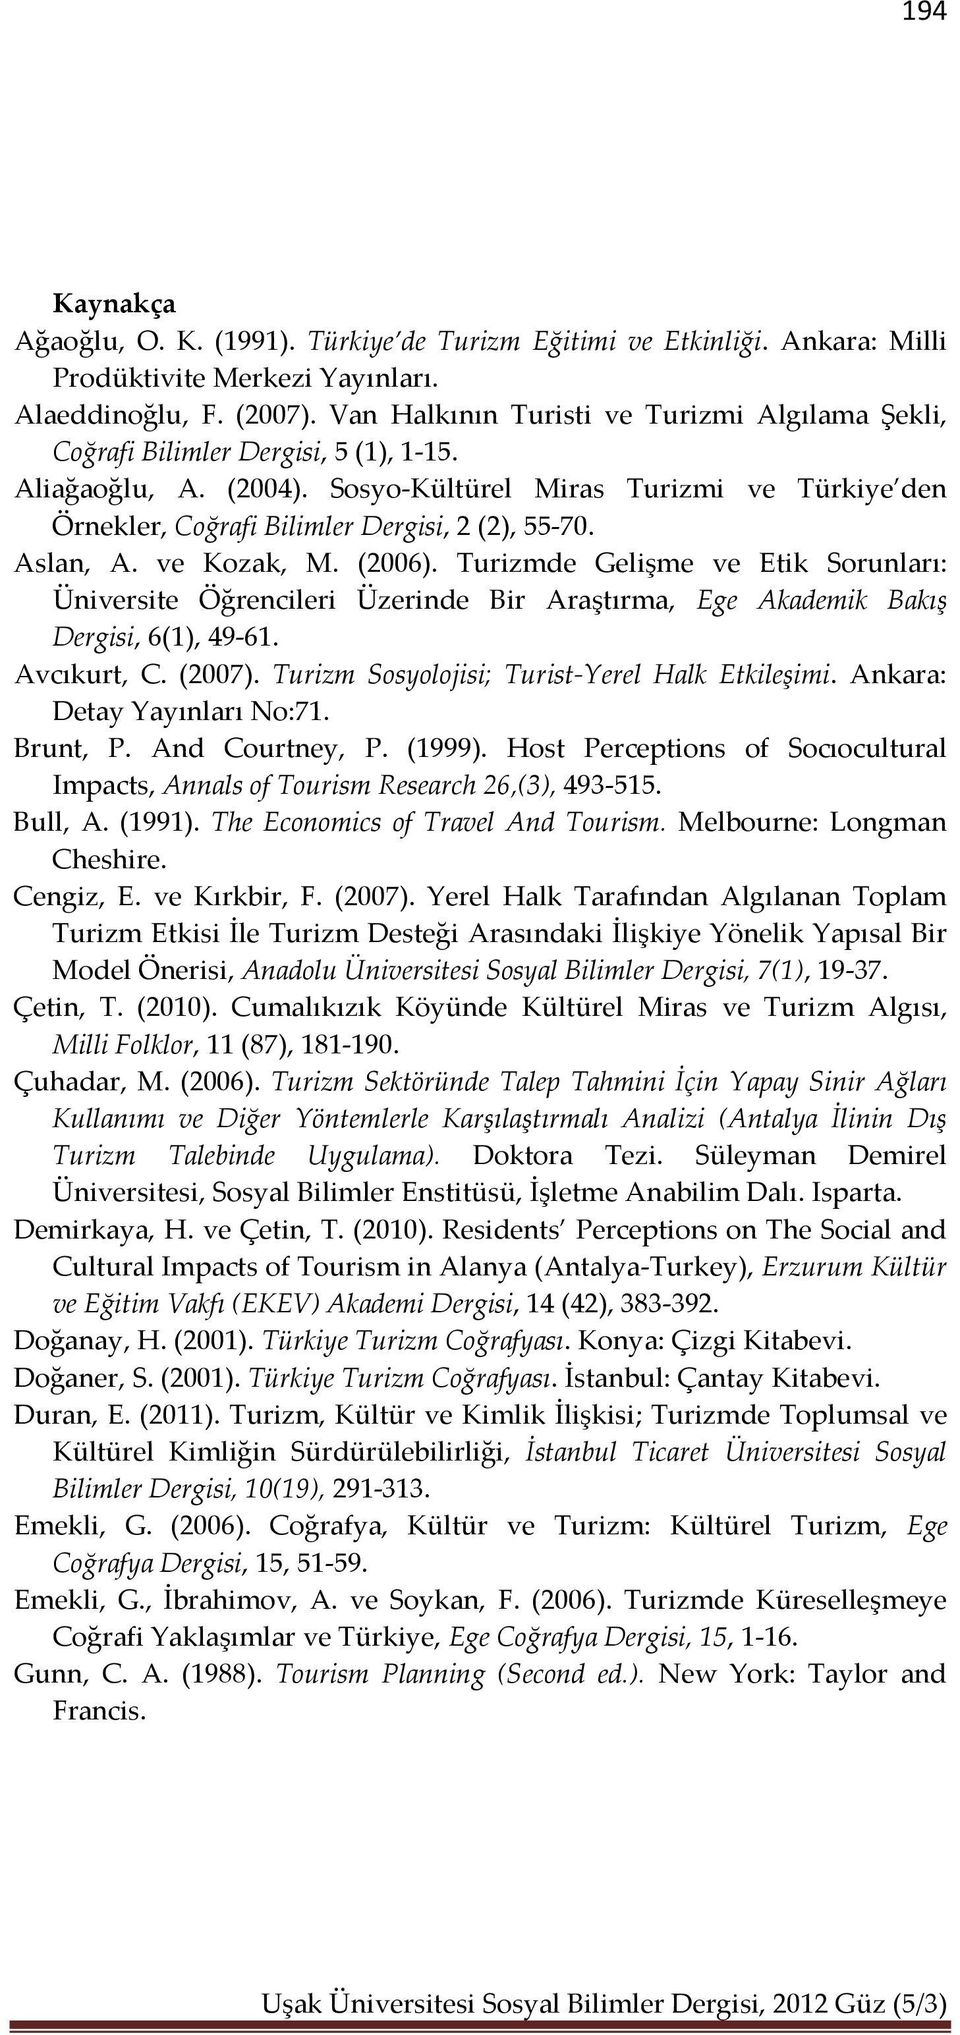 Avcıkurt, C. (). Turizm Sosyolojisi; Turist-Yerel Halk Etkileşimi. Ankara: Detay Yayınları No:. Brunt, P. And Courtney, P. (). Host Perceptions of Socıocultural Impacts, Annals of Tourism Research,(), -.